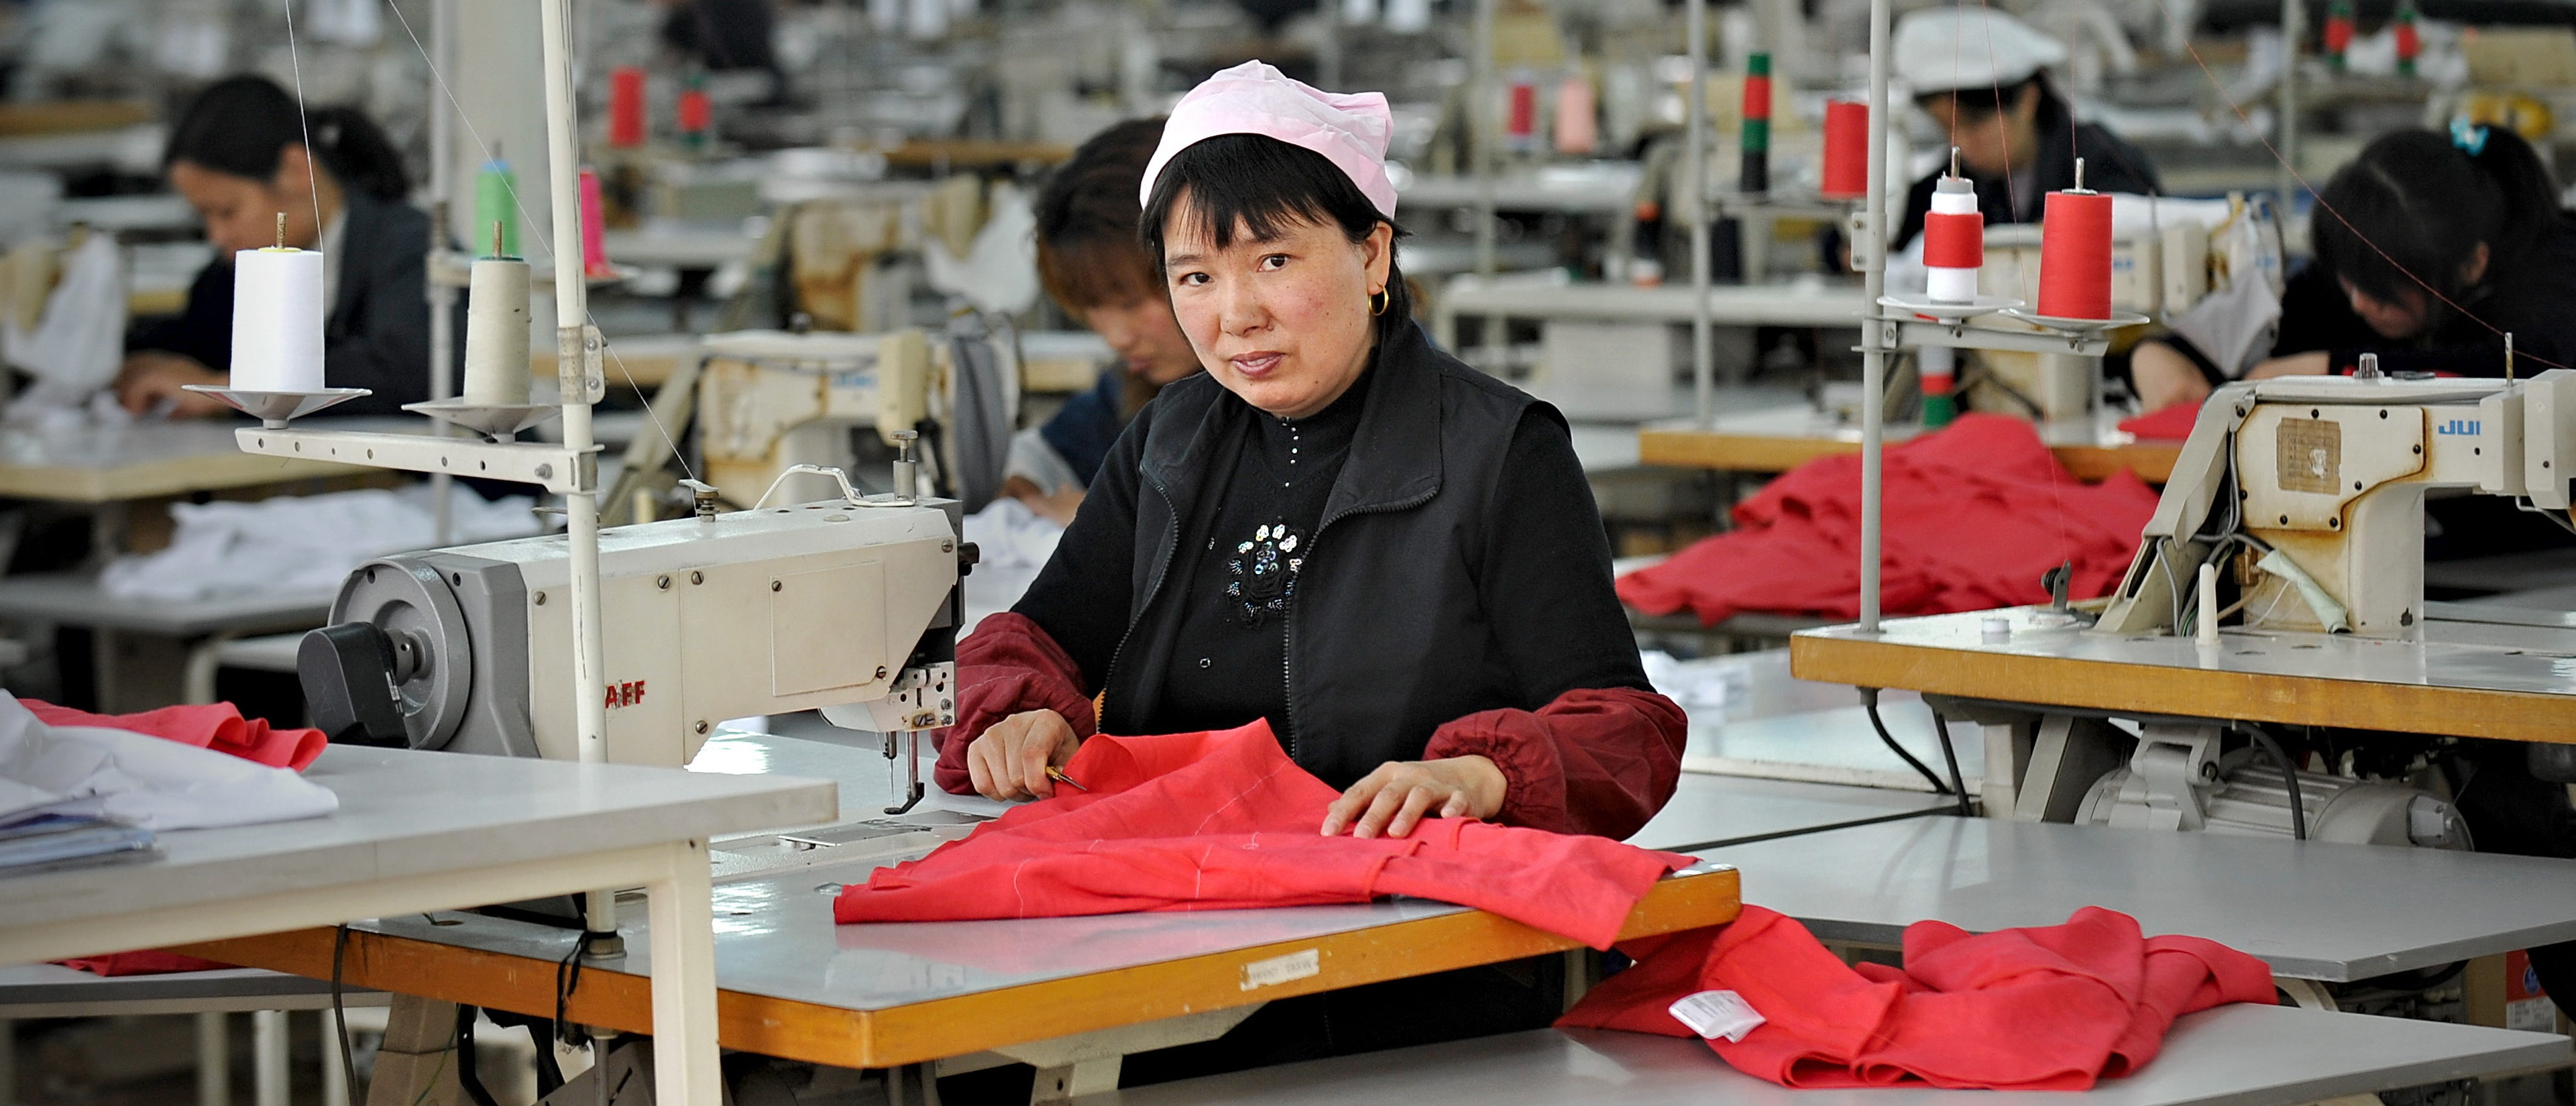 A Chinese worker looks on from her work station at a garment factory in Pinghu some 100 kms from Shanghai on April 10, 2010. China posted its first monthly trade deficit in six years in March 2010 as imports rocketed, far outstripping the growth in exports, customs officials announced on April 10, 2010. AFP PHOTO/PHILIPPE LOPEZ (Photo: PHILIPPE LOPEZ/AFP/Getty Images)